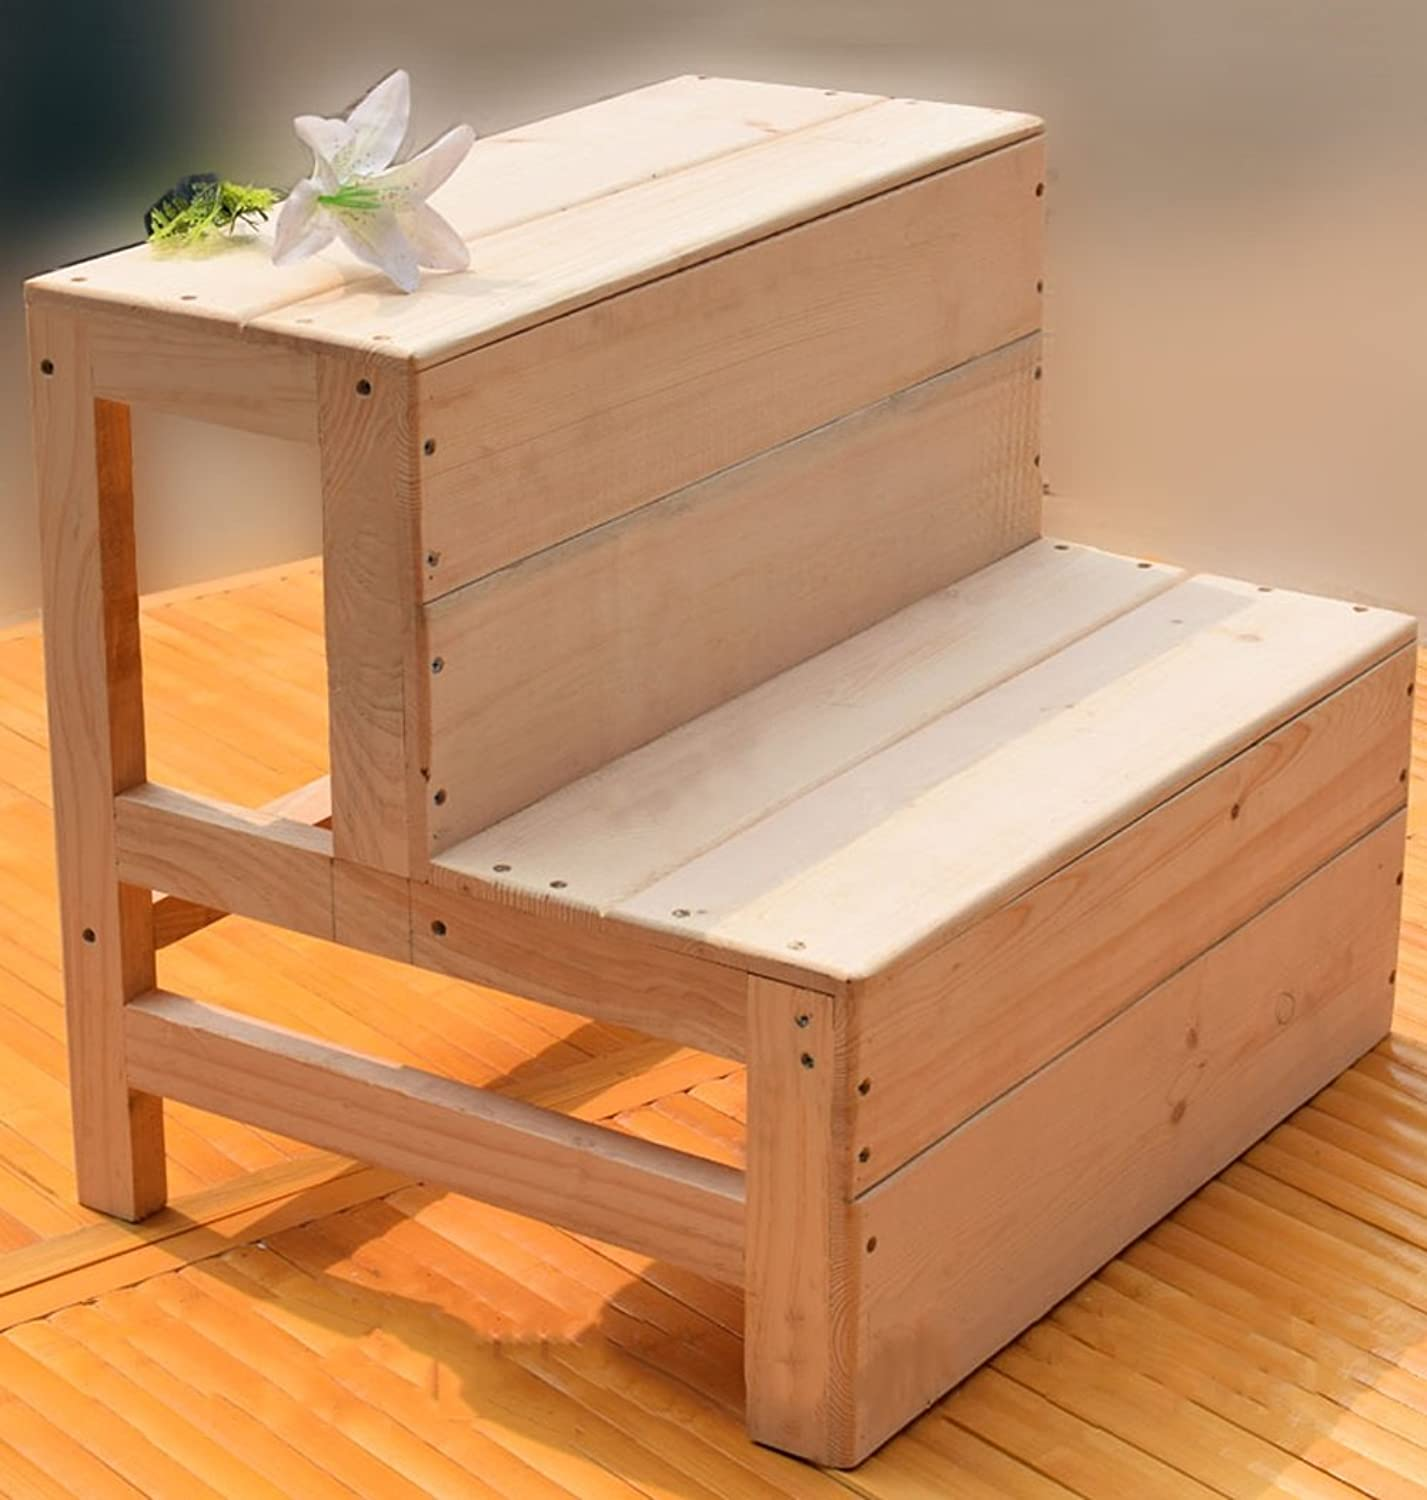 KTYXDE 3-Step Folding Step Stool Home Stairs Wooden Step Stool, Replacement shoes Bench Stool Footstool Flower Stand Step Stool